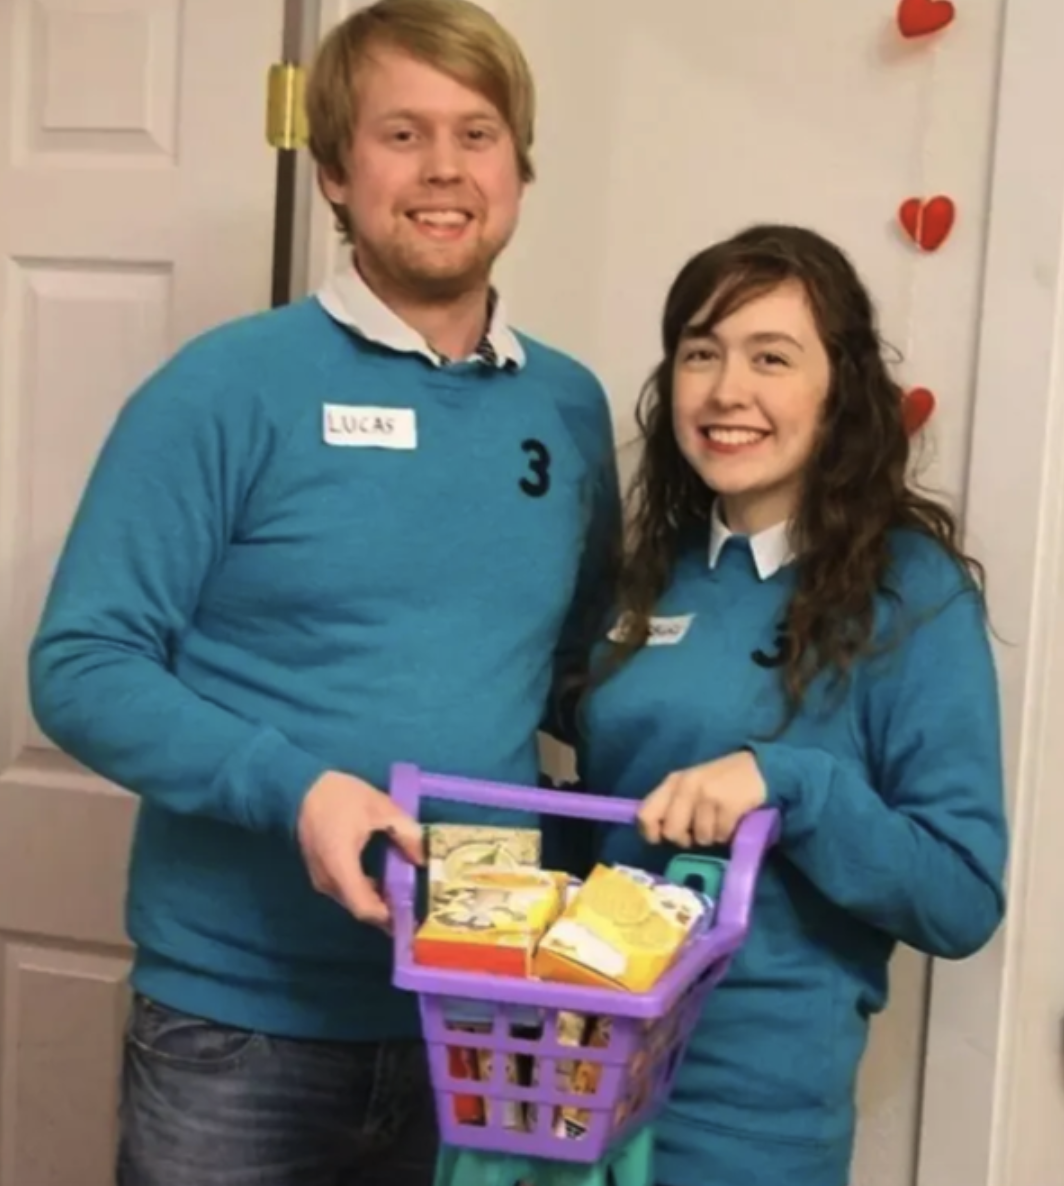 Two contestants wearing traditional blue sweaters, name tags, and the number three, all while holding onto a shopping cart